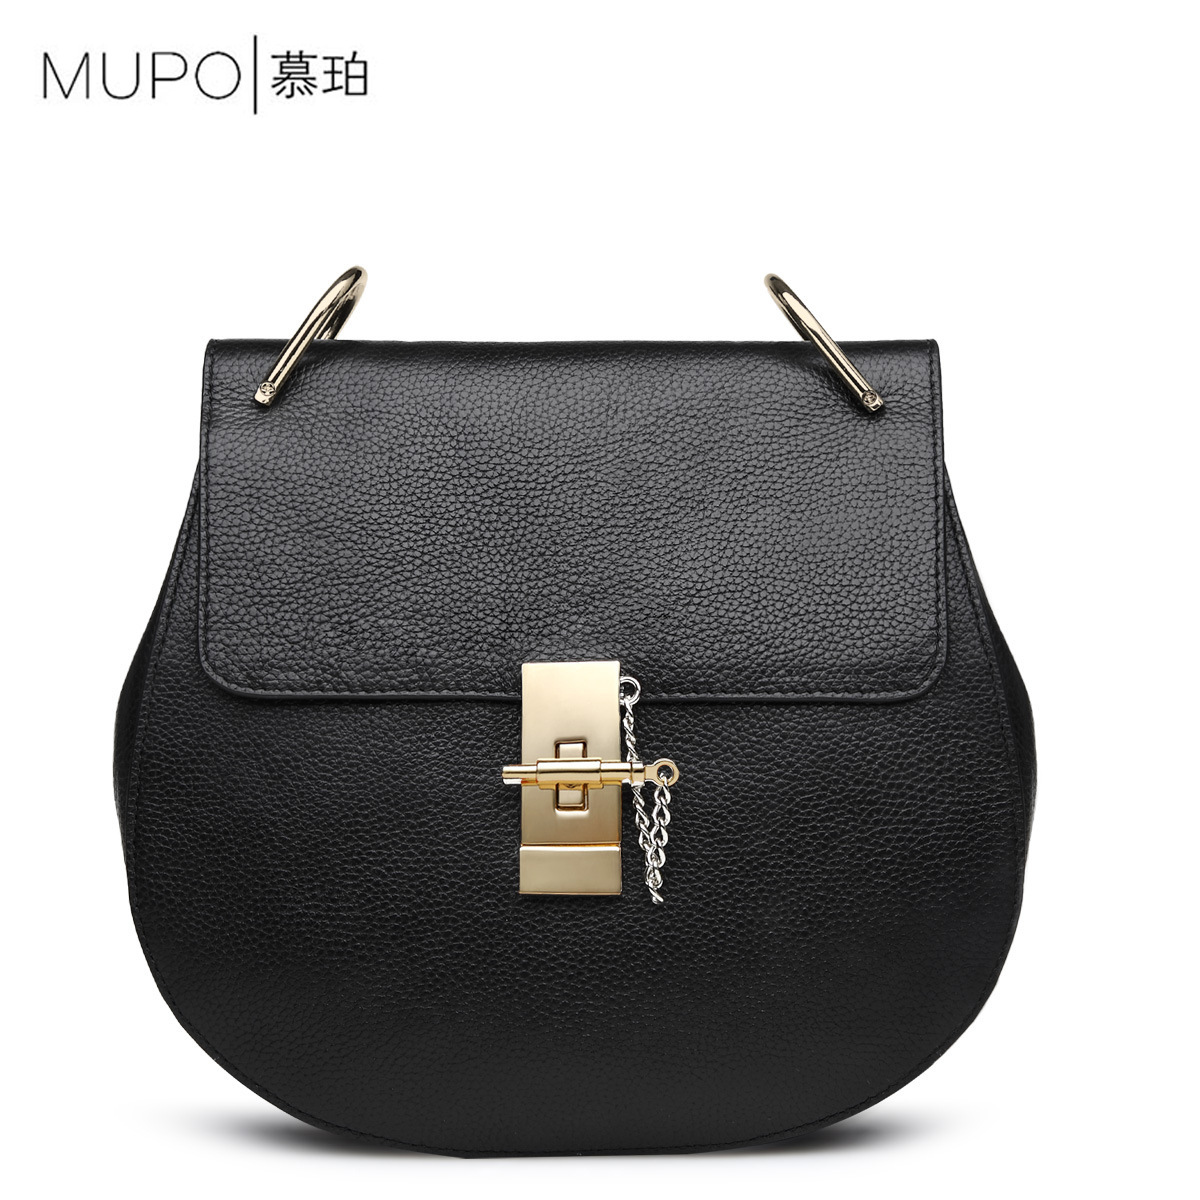 Famous Brand Design Barrel-shaped Telescopic Chain Cow Genuine Leather Shoulder Bag for Ladies Lock Hasp Handbag Bags for Women